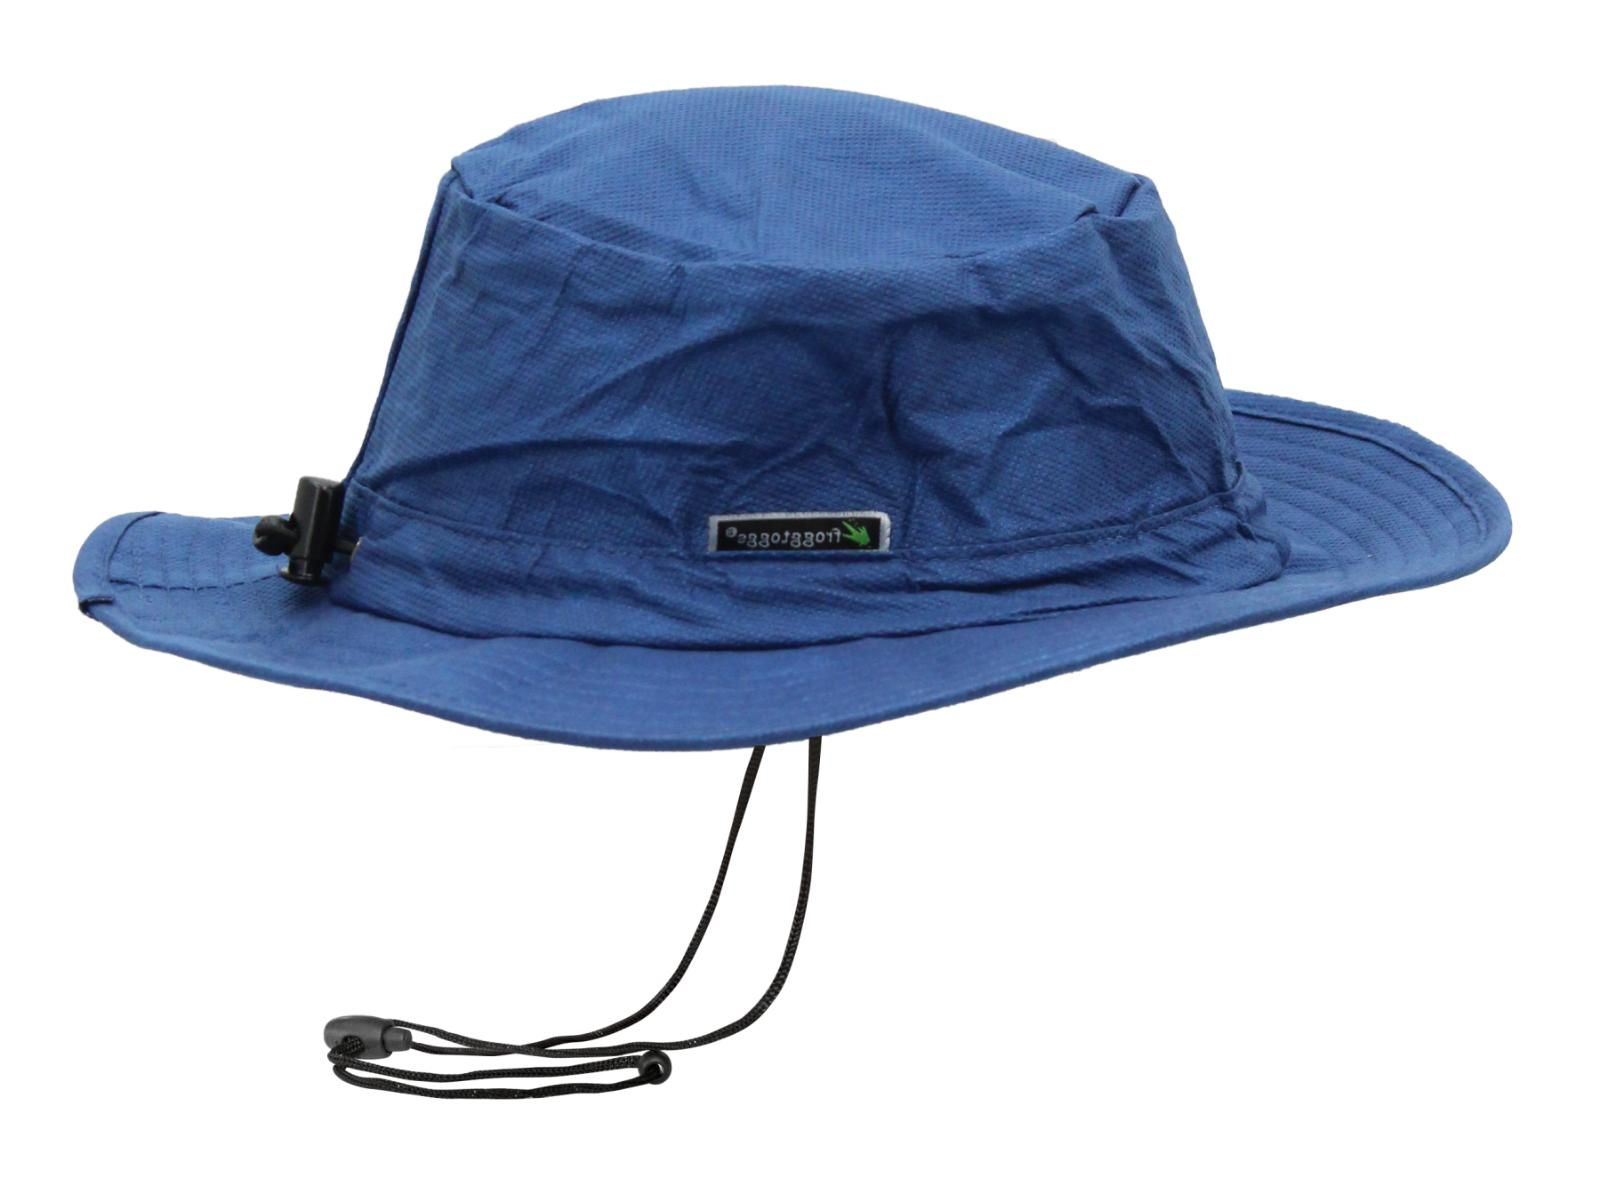 breathable waterproof royal blue rain and sun